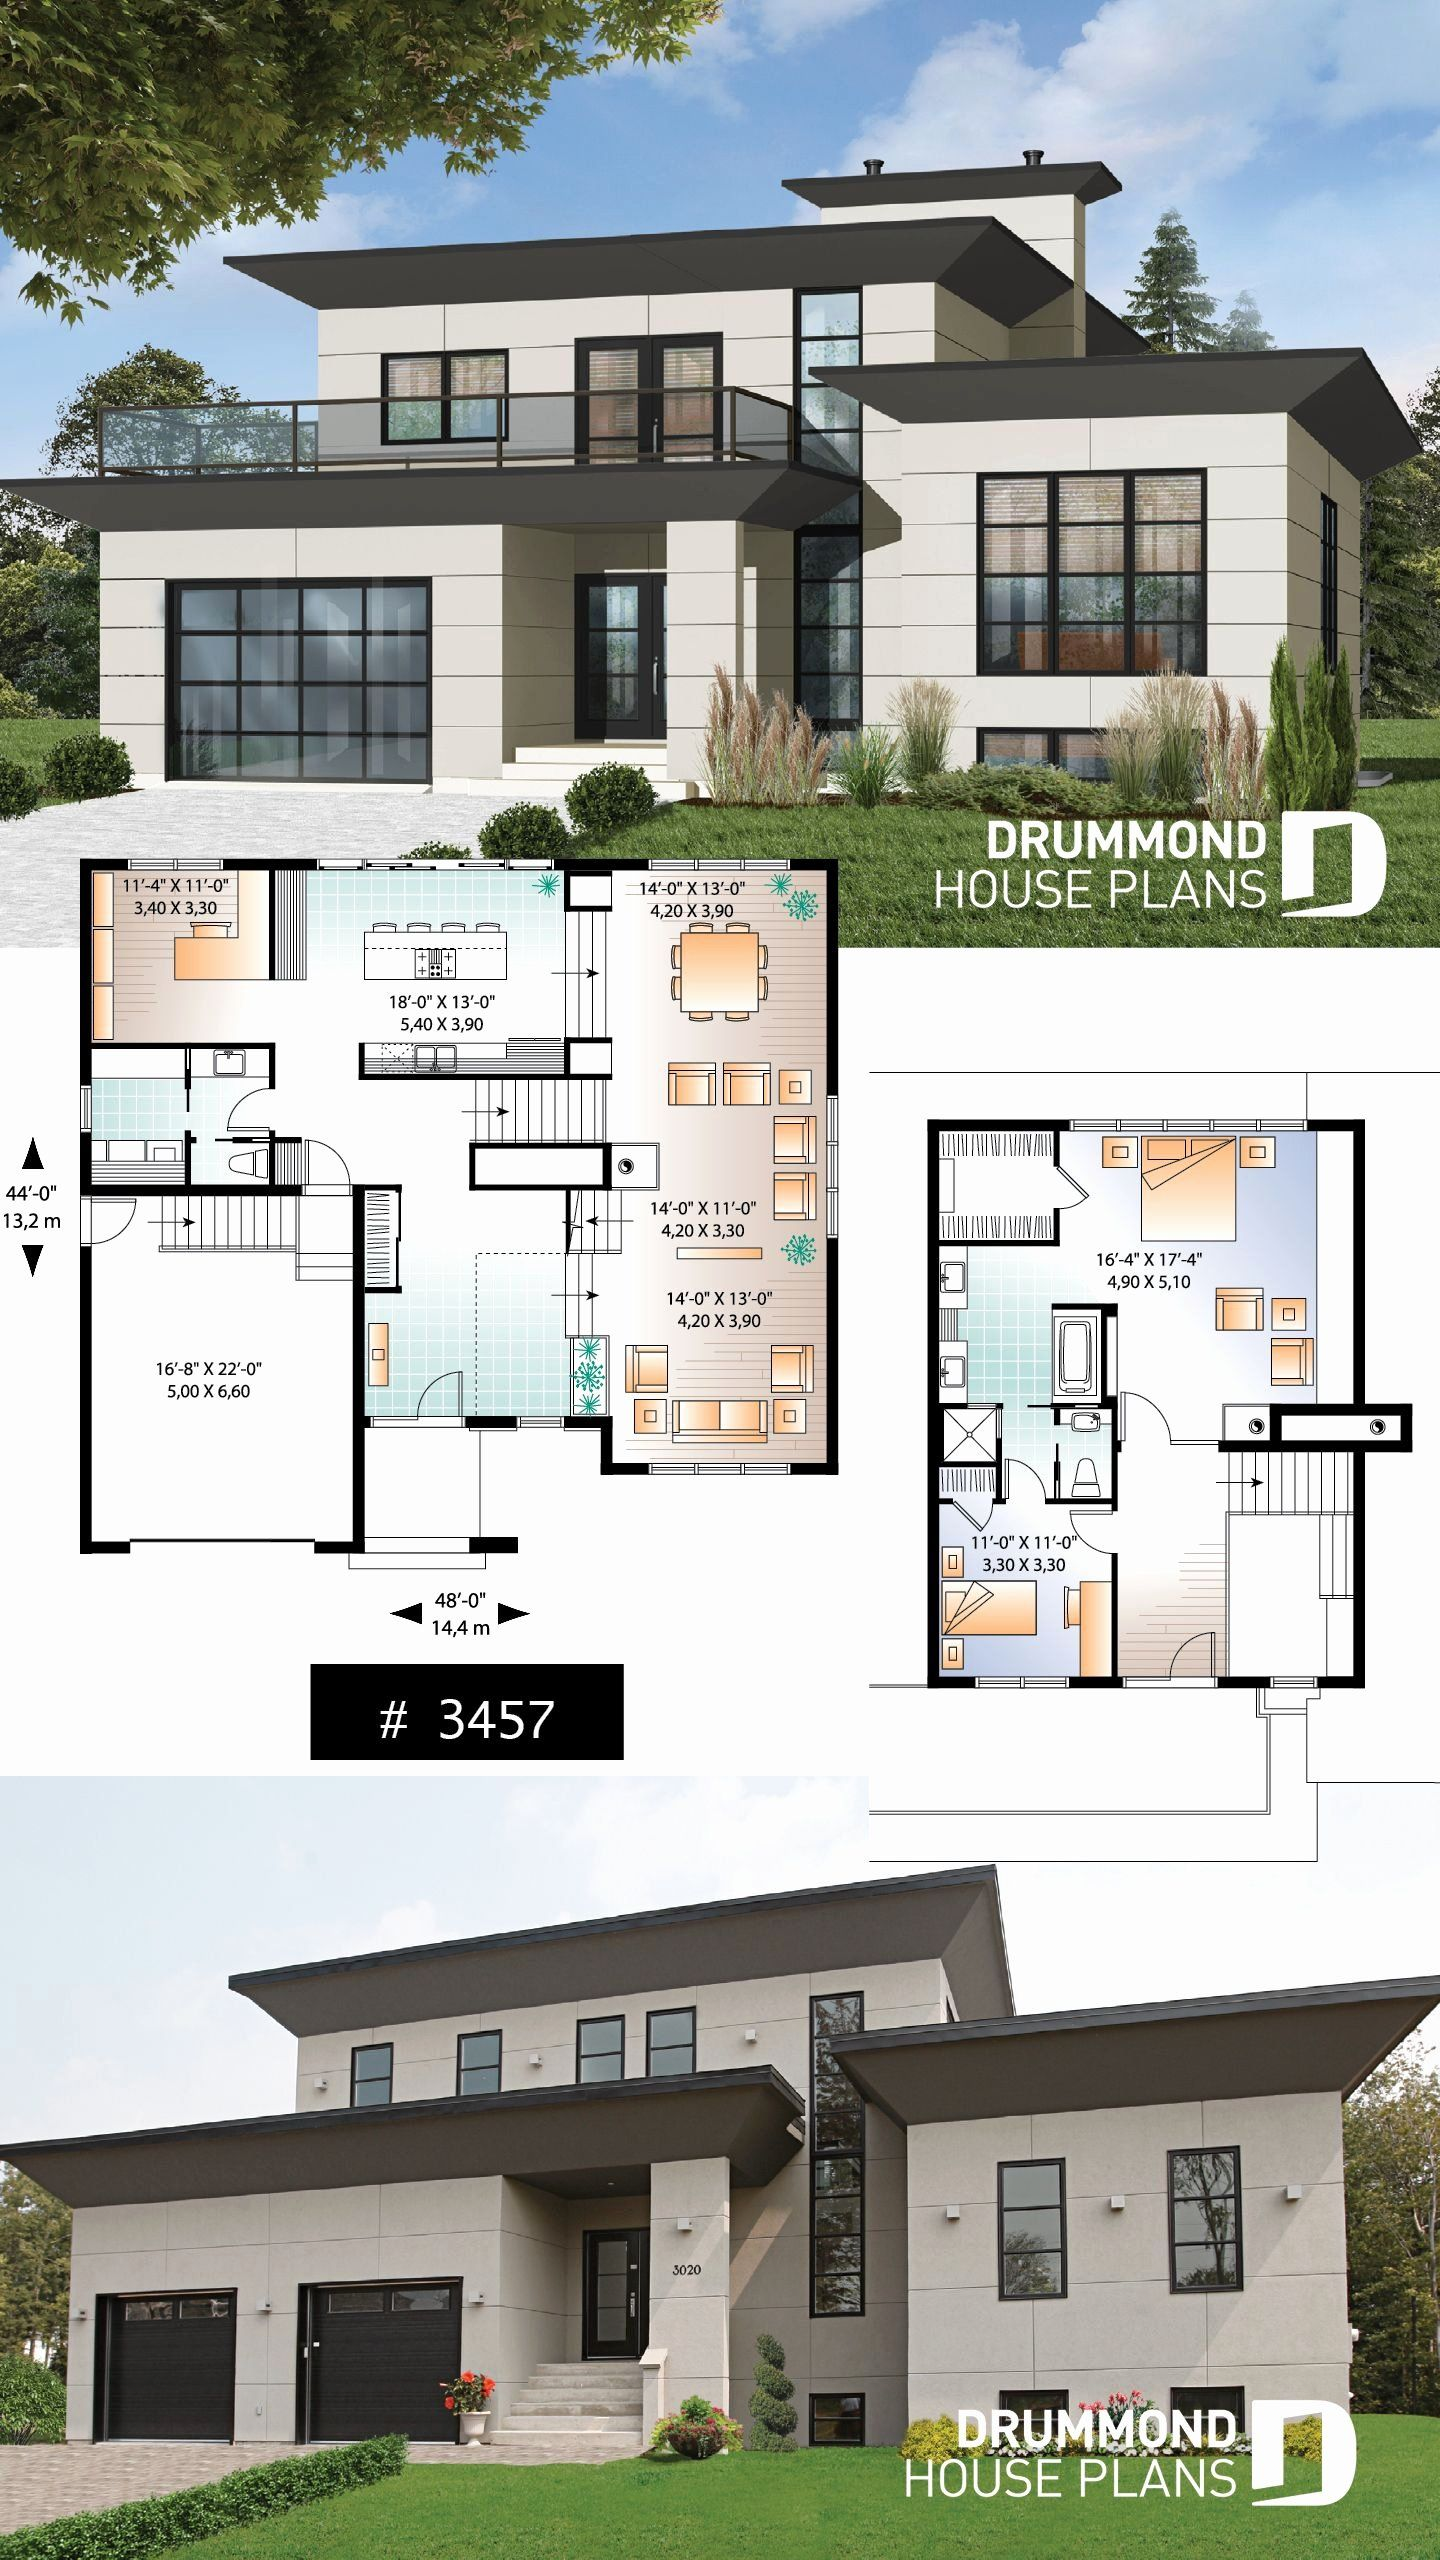 Contemporary Split Level House Plans Best Of House Plan Caldwell No 3457 Modern House Floor Plans Contemporary House Plans Modern Style House Plans